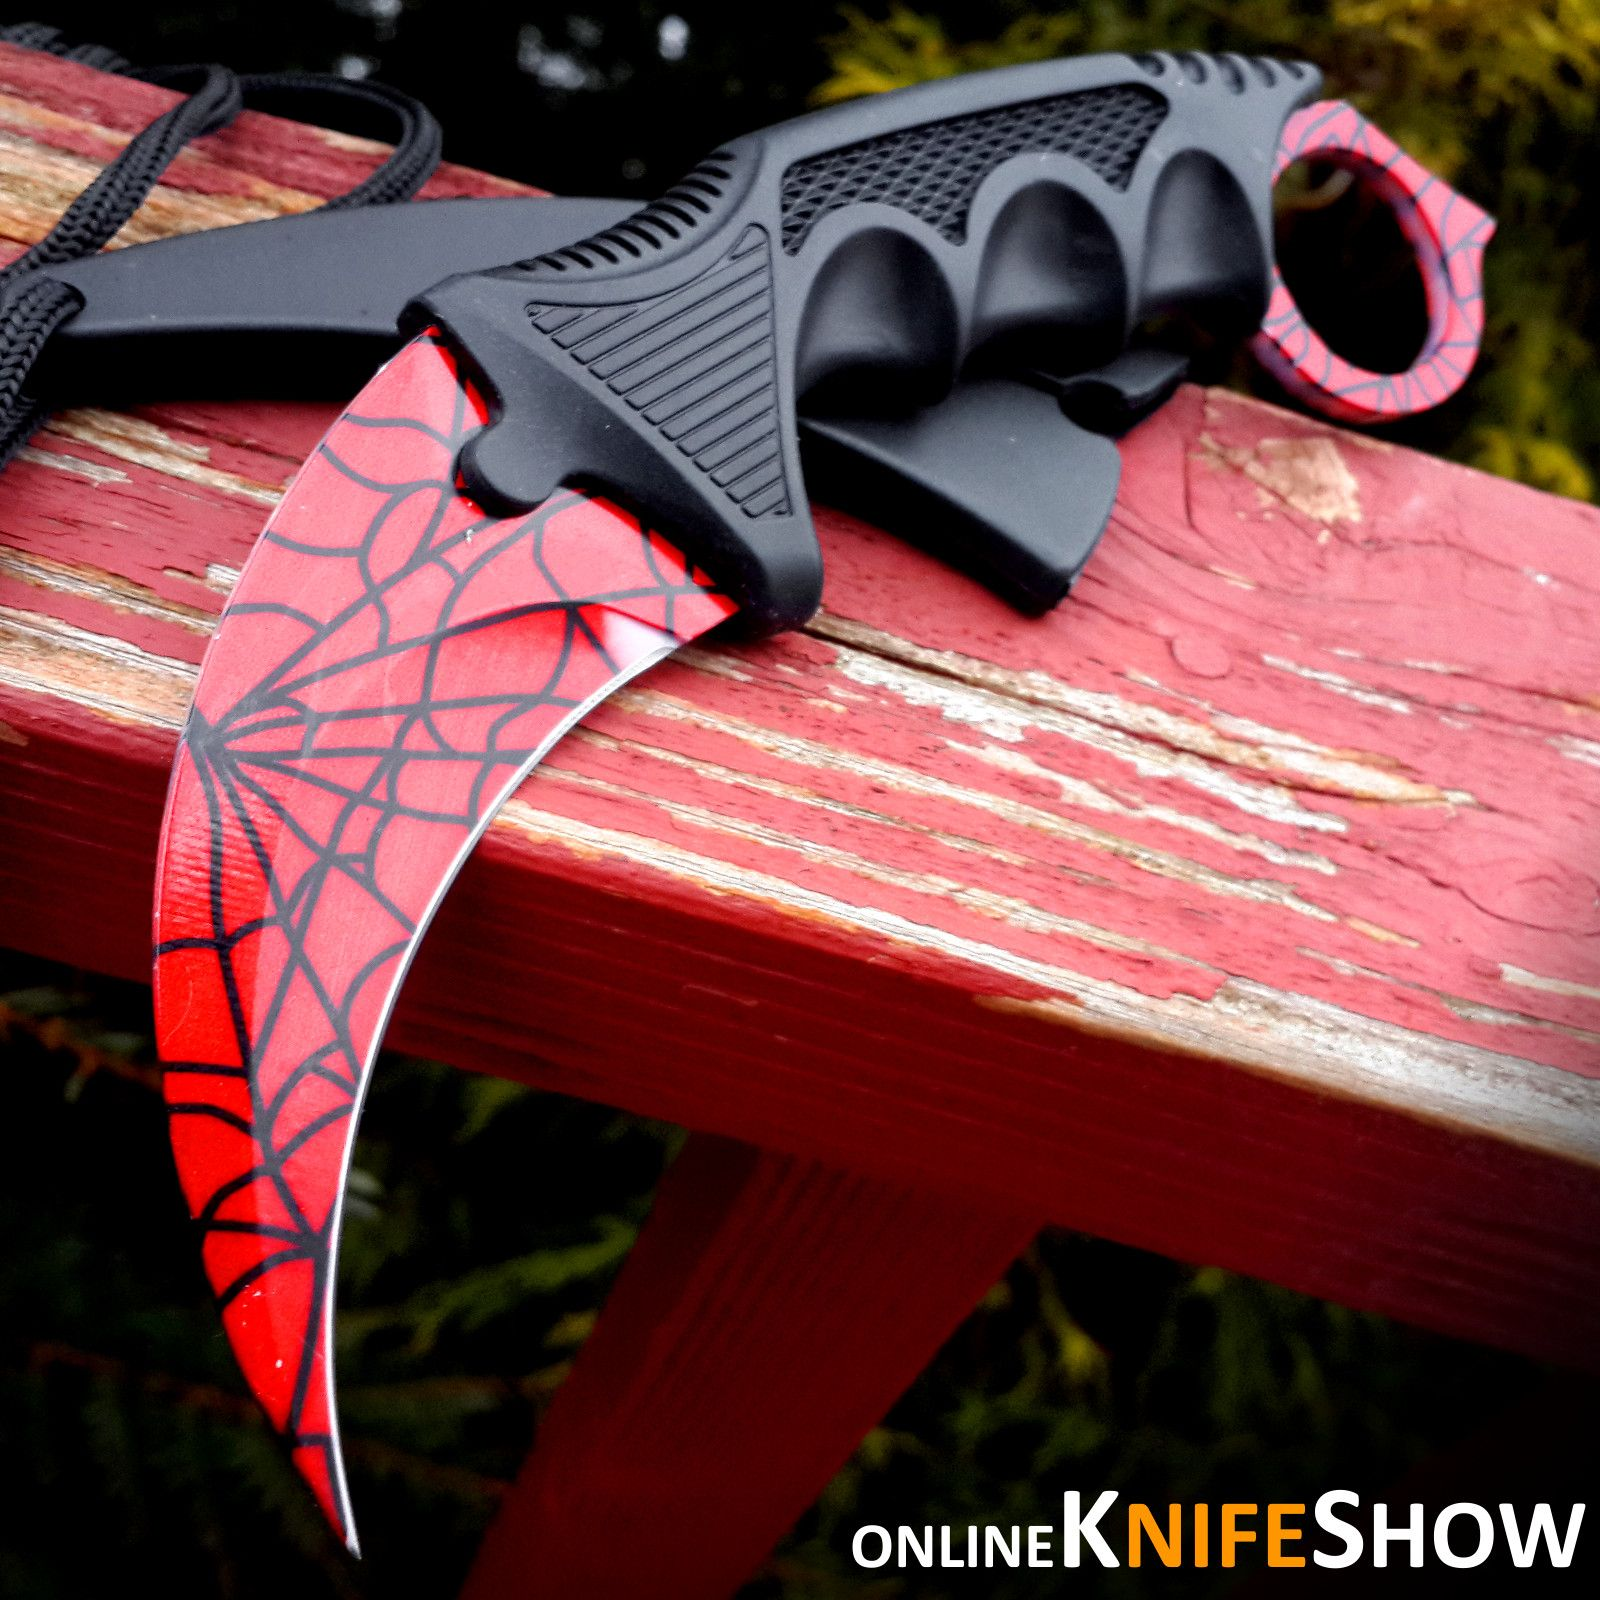 Red Spider Web Design Gamer Tattoos Neck Knife Karambit